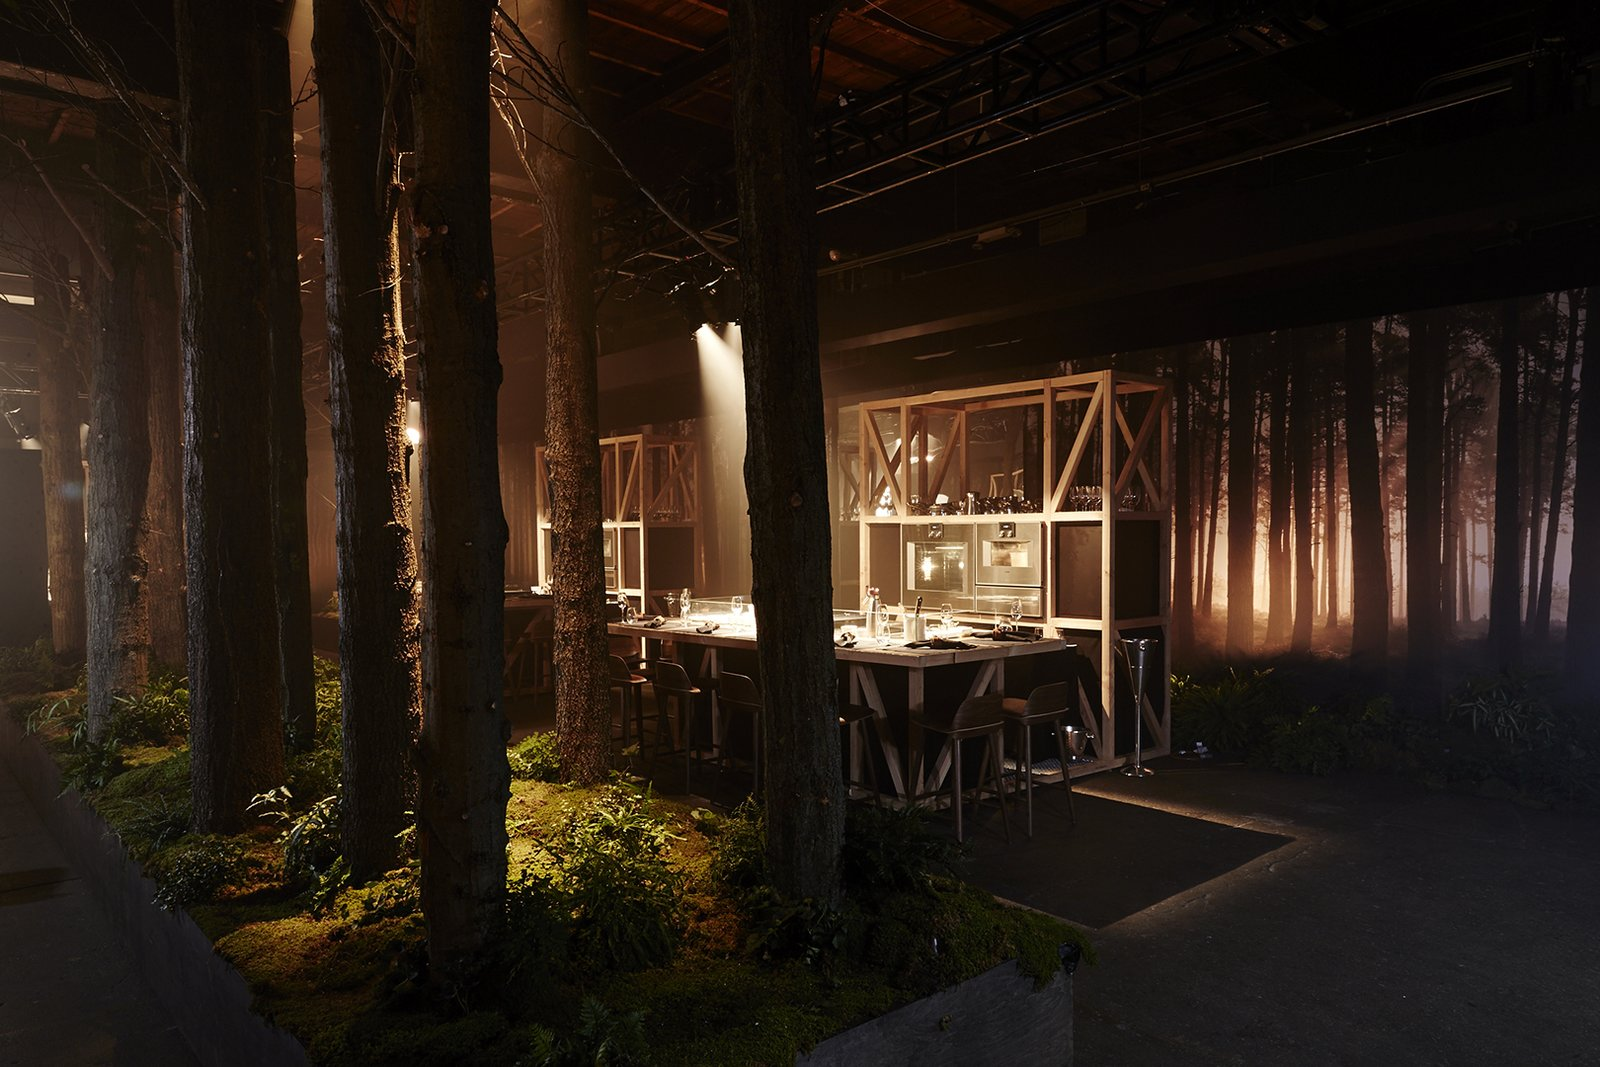 To celebrate their 333rd anniversary, appliance brand Gaggenau created Restaurant 1683, a four-night pop-up that brought the Black Forest to New York City.  gaggenau.com  From the Editors' Inbox: October 2016